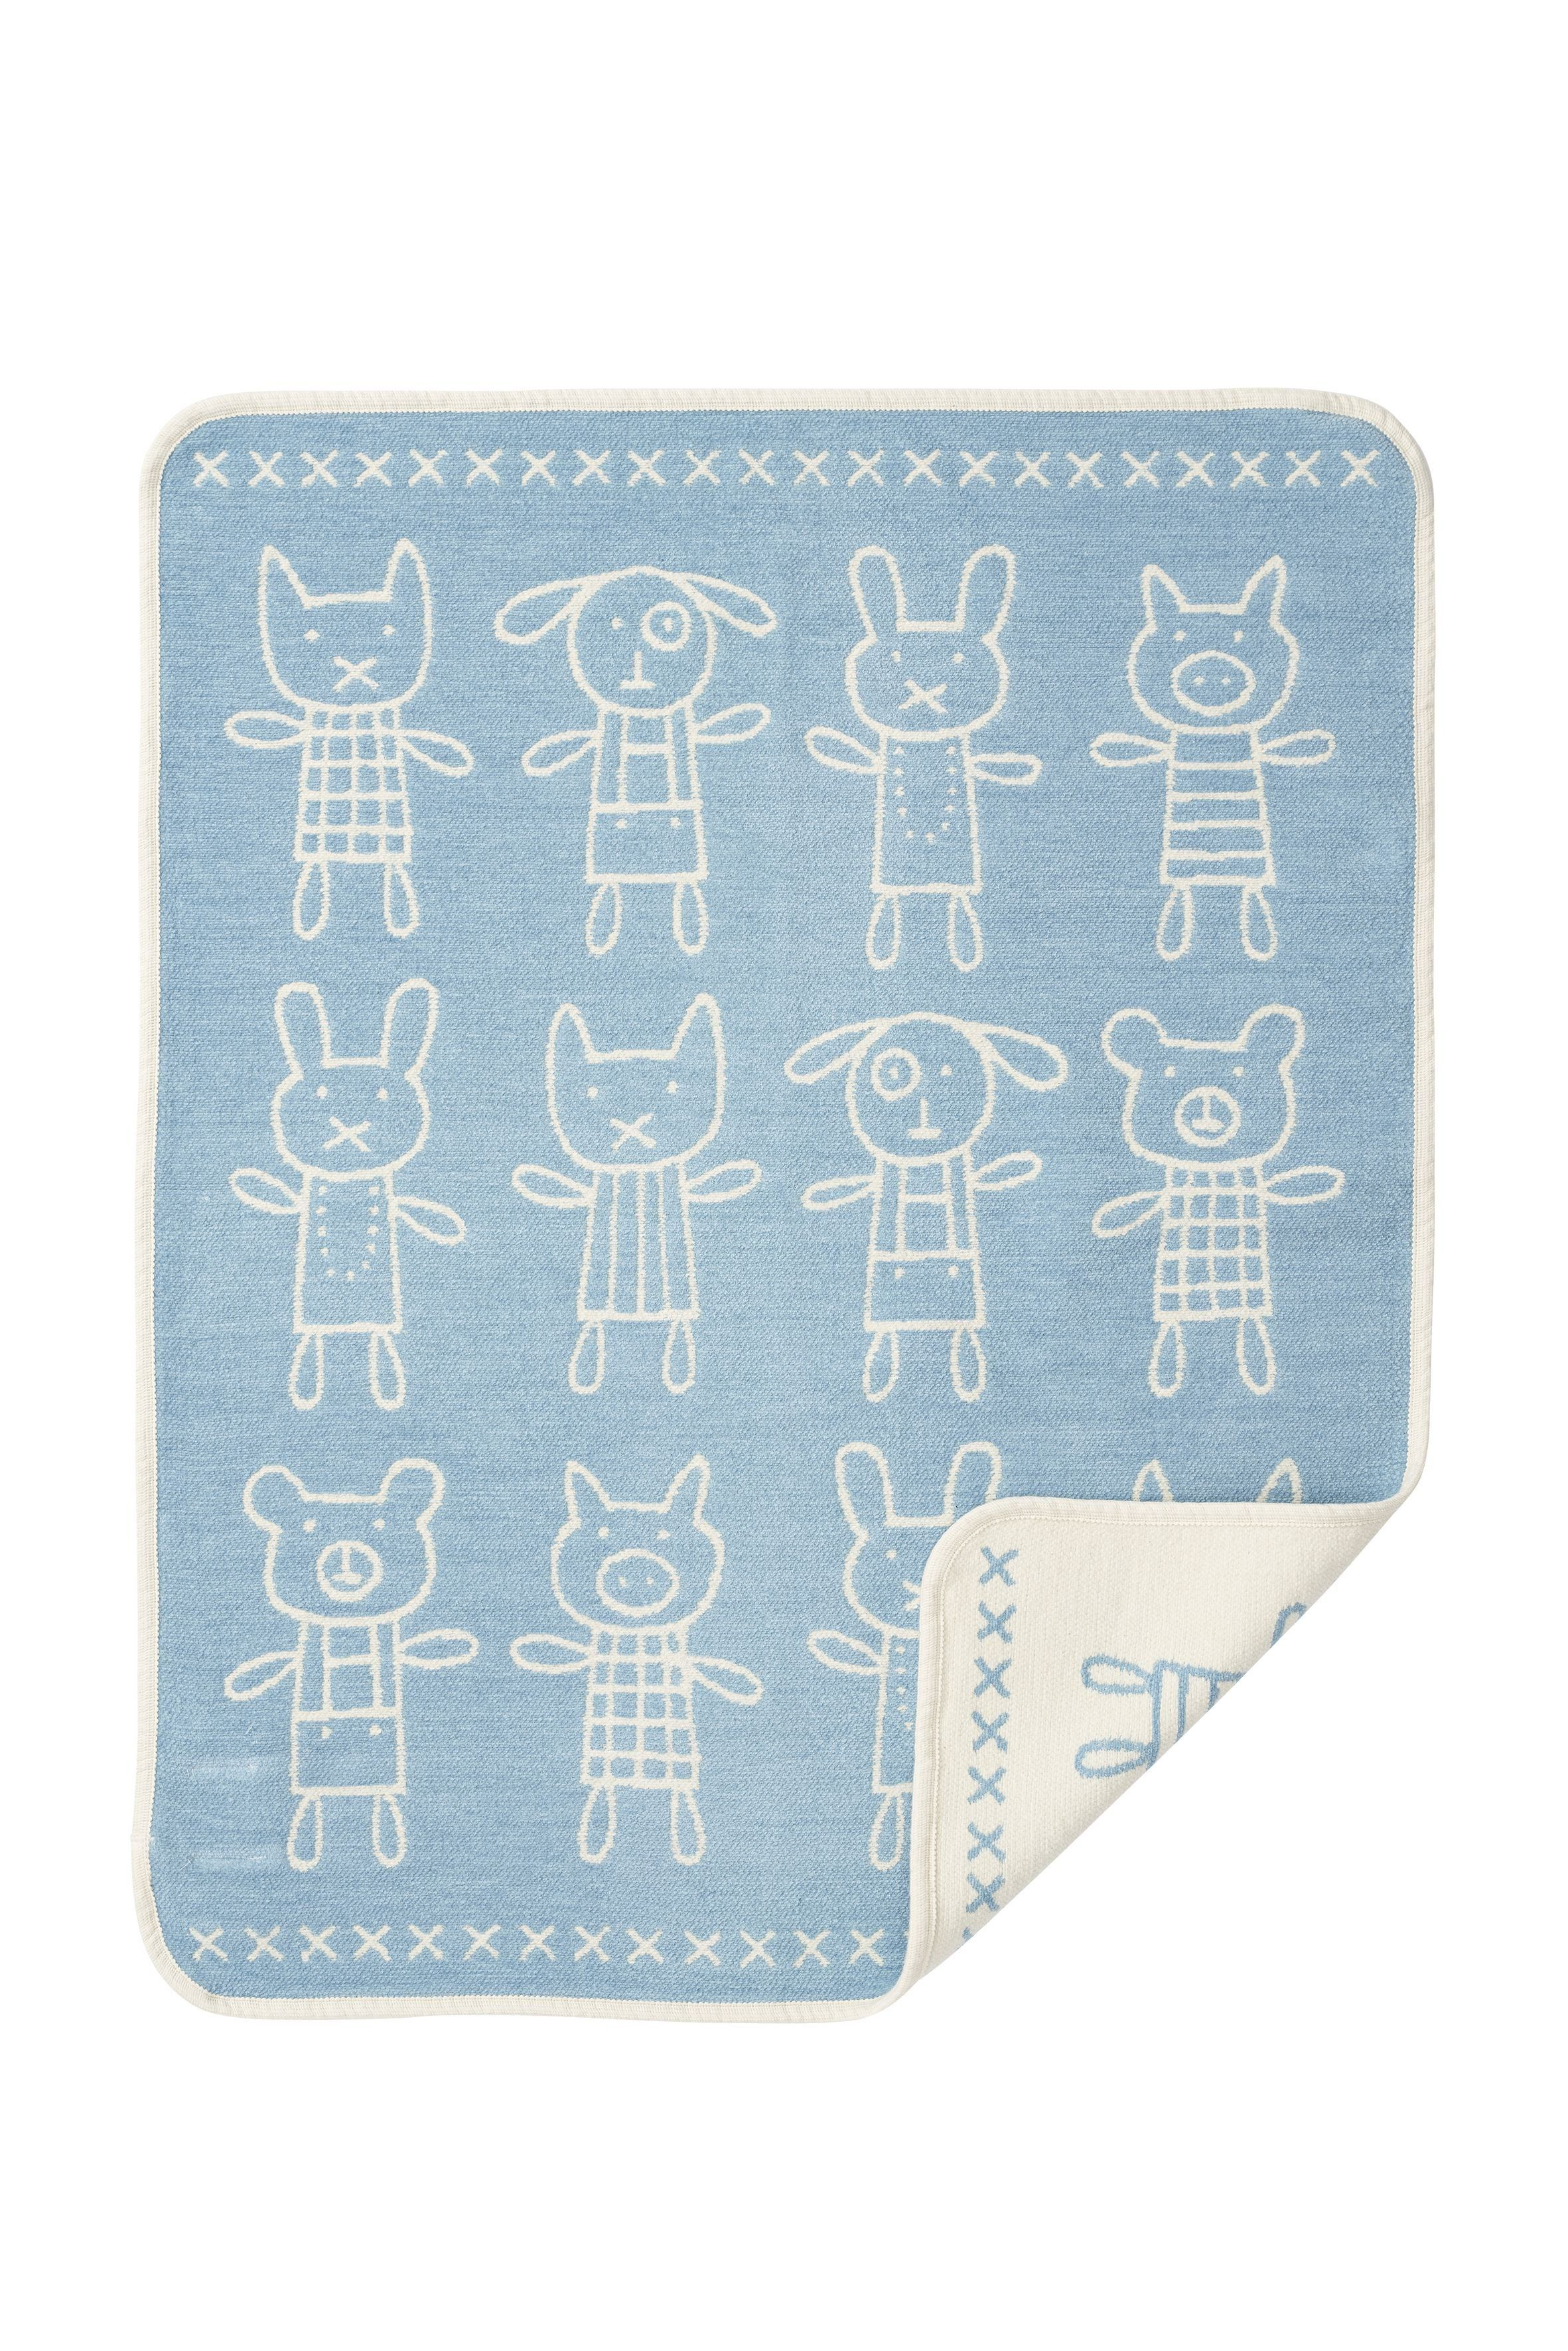 Klippan Kids' Hug Organic Cotton Chenille Blanket in Blue